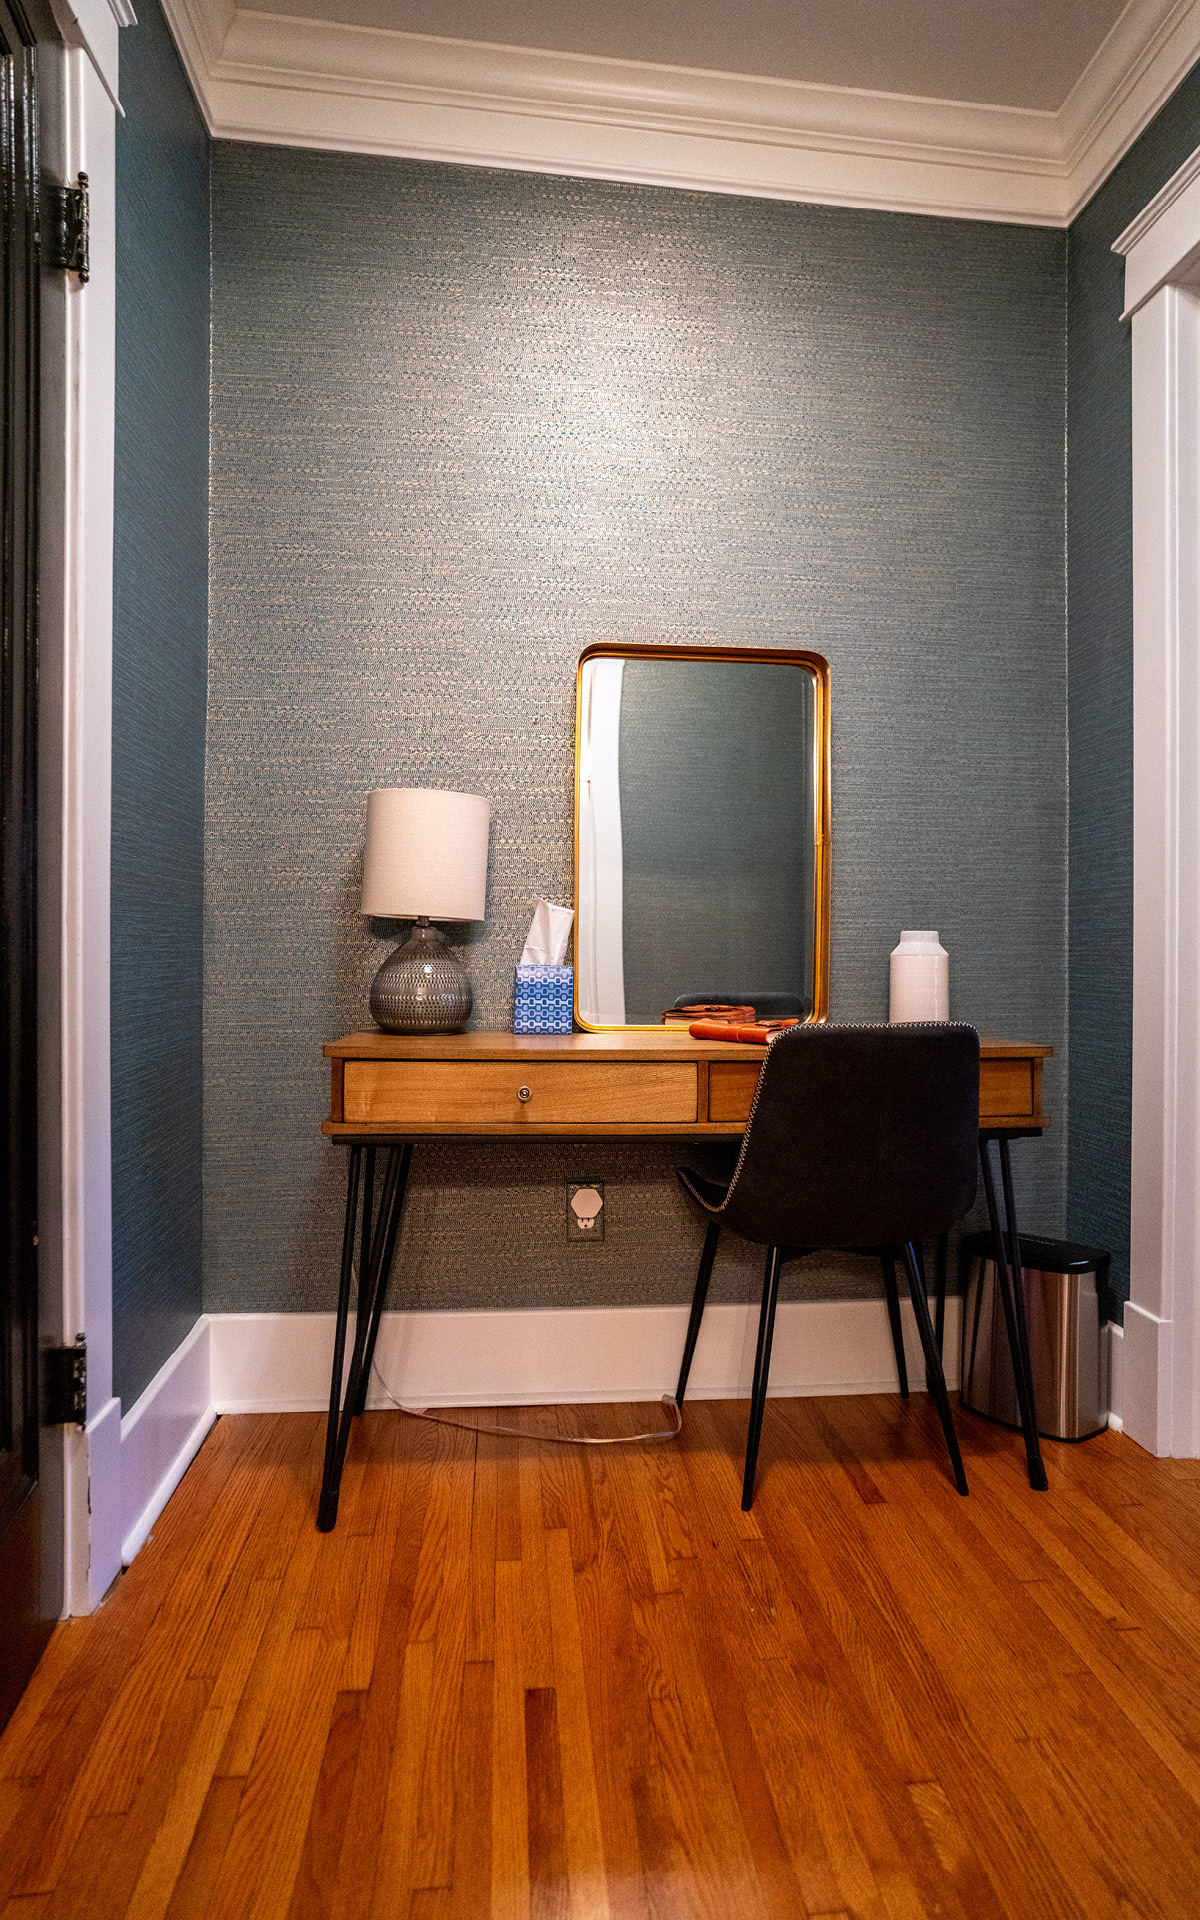 A small desk and mirror for those who bring a little work with them